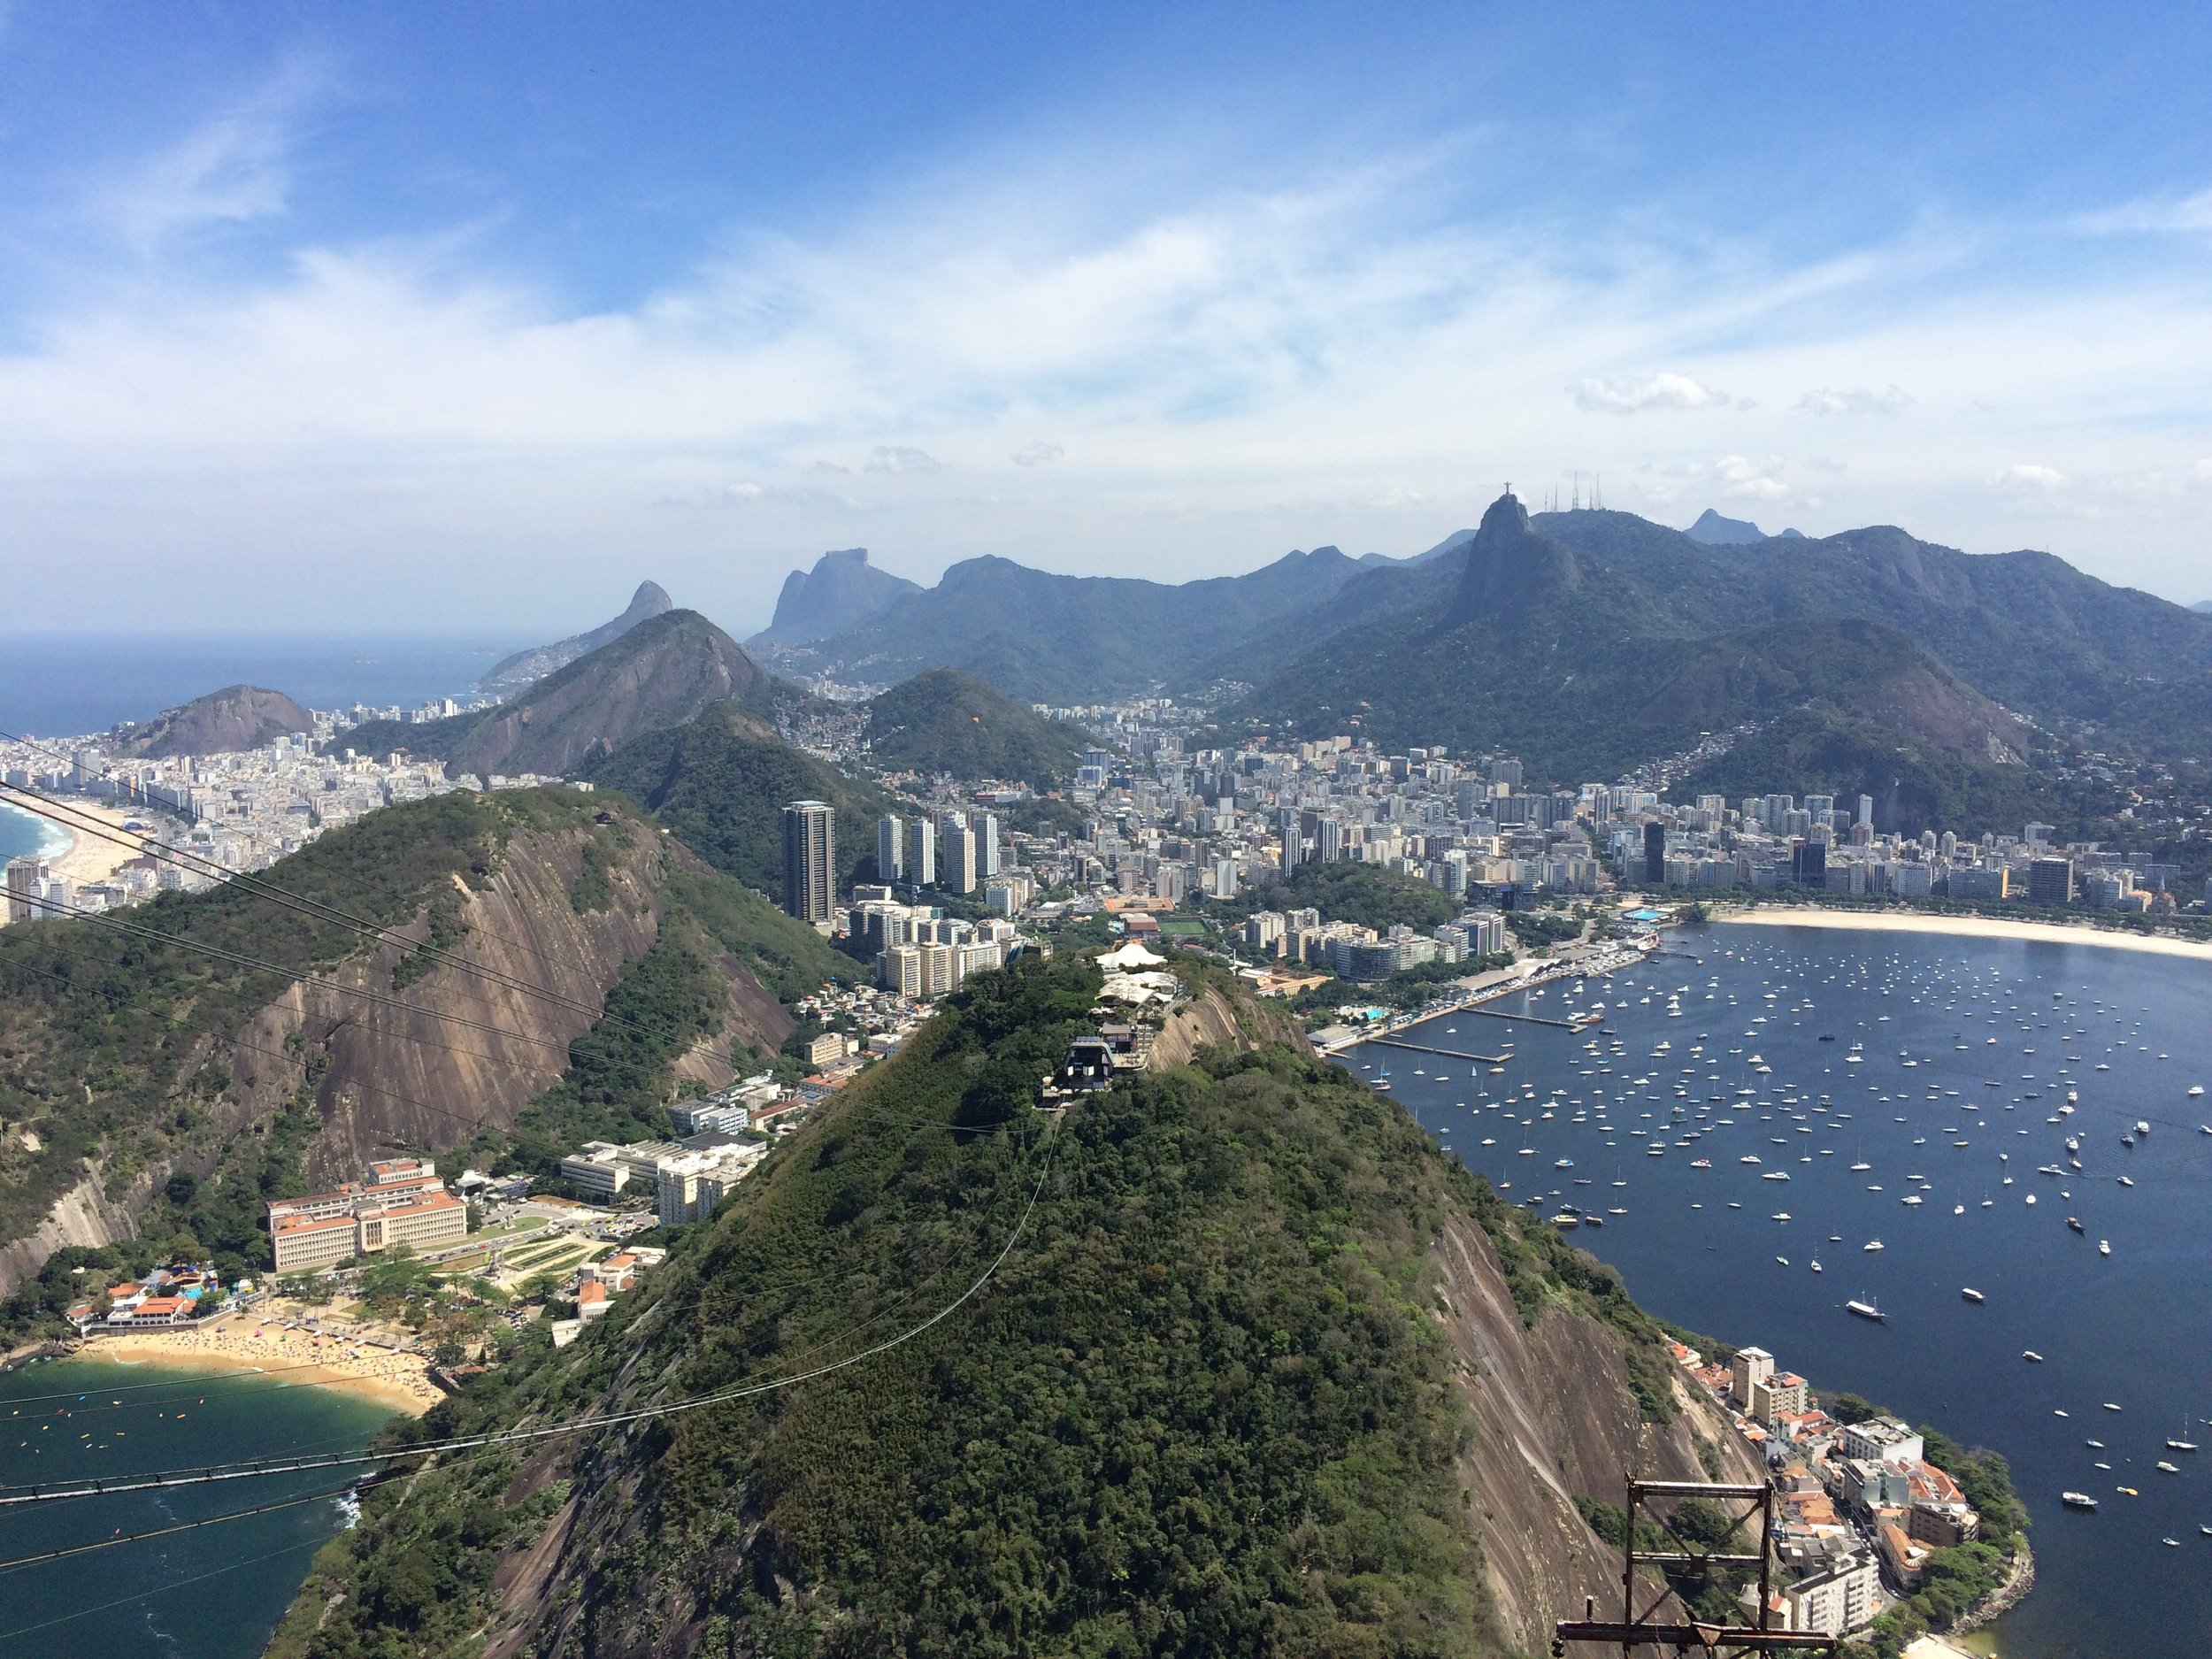 From Sugarloaf Mountain